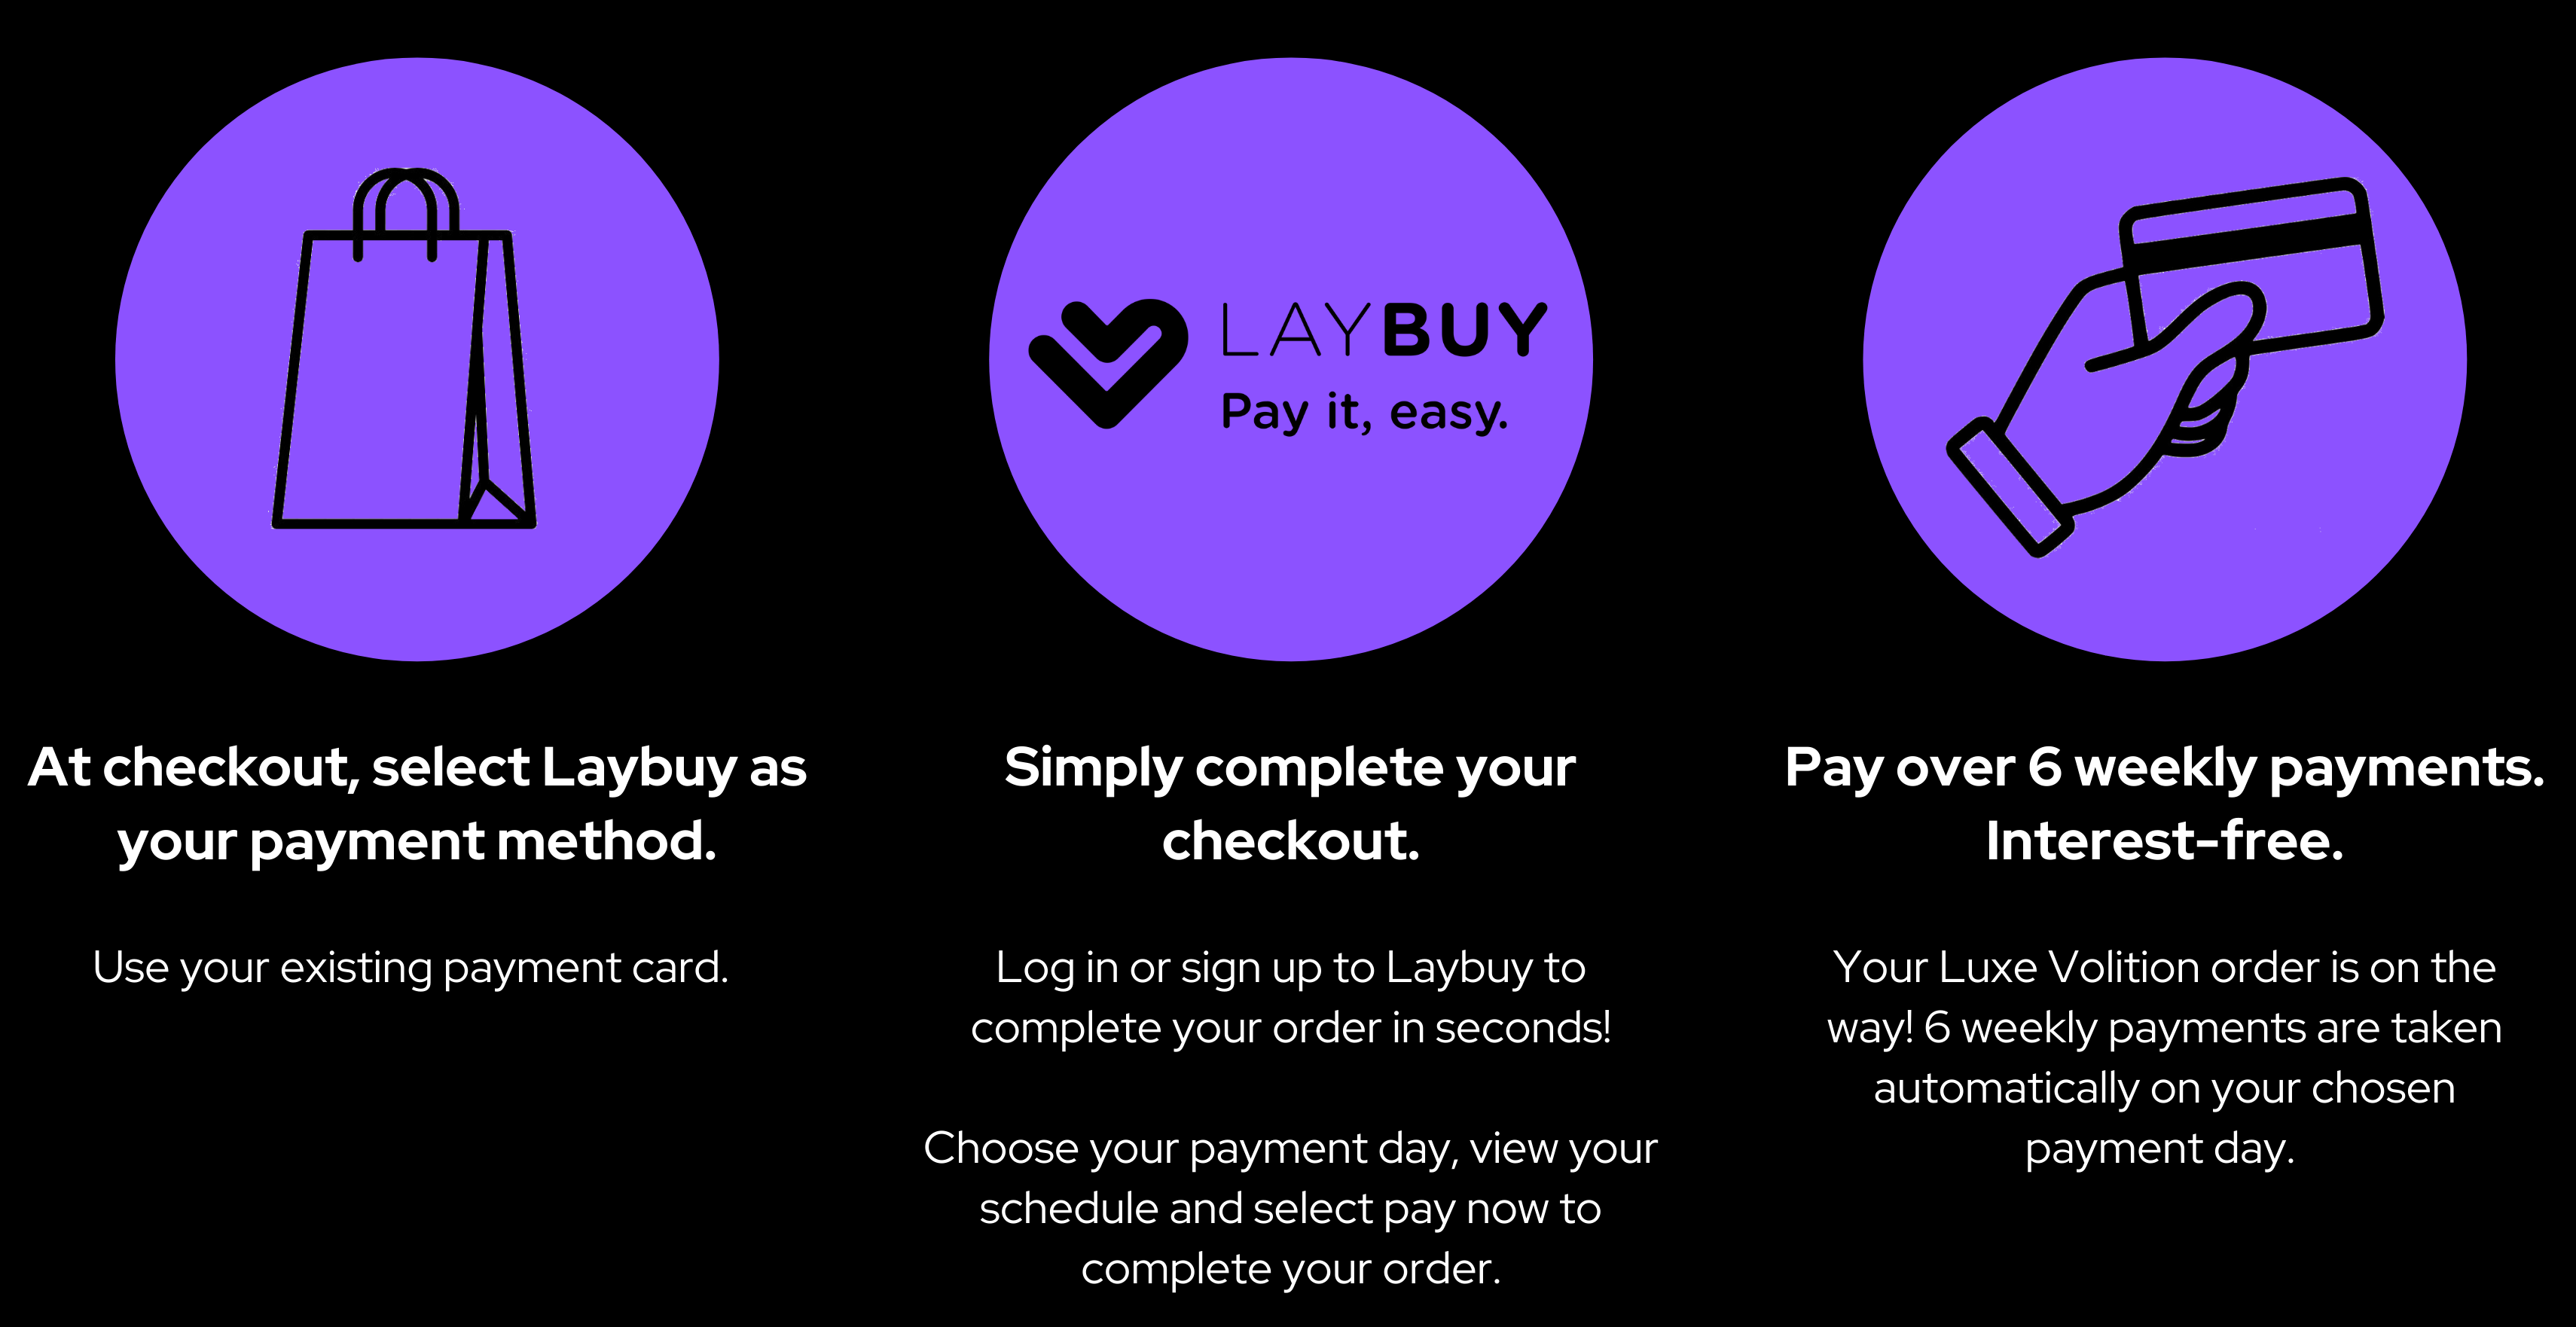 How to use Laybuy on Luxe Volition